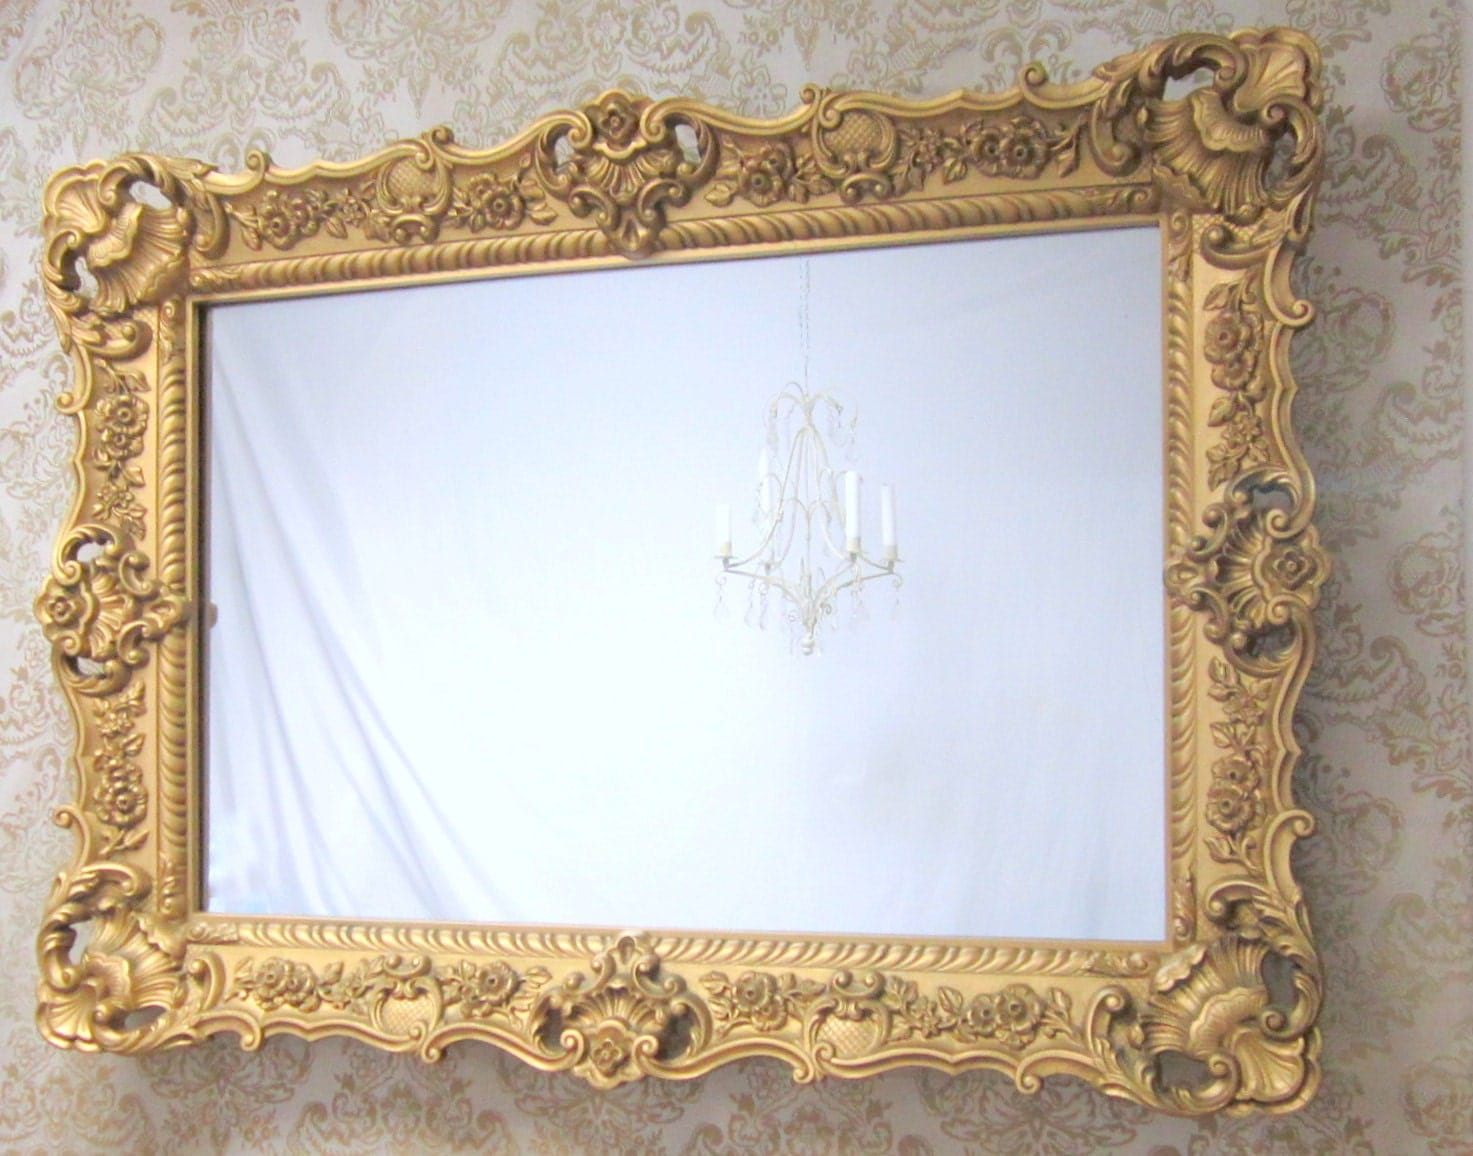 Hollywood regency mirrors for sale 45x33 large for Big mirrors for sale